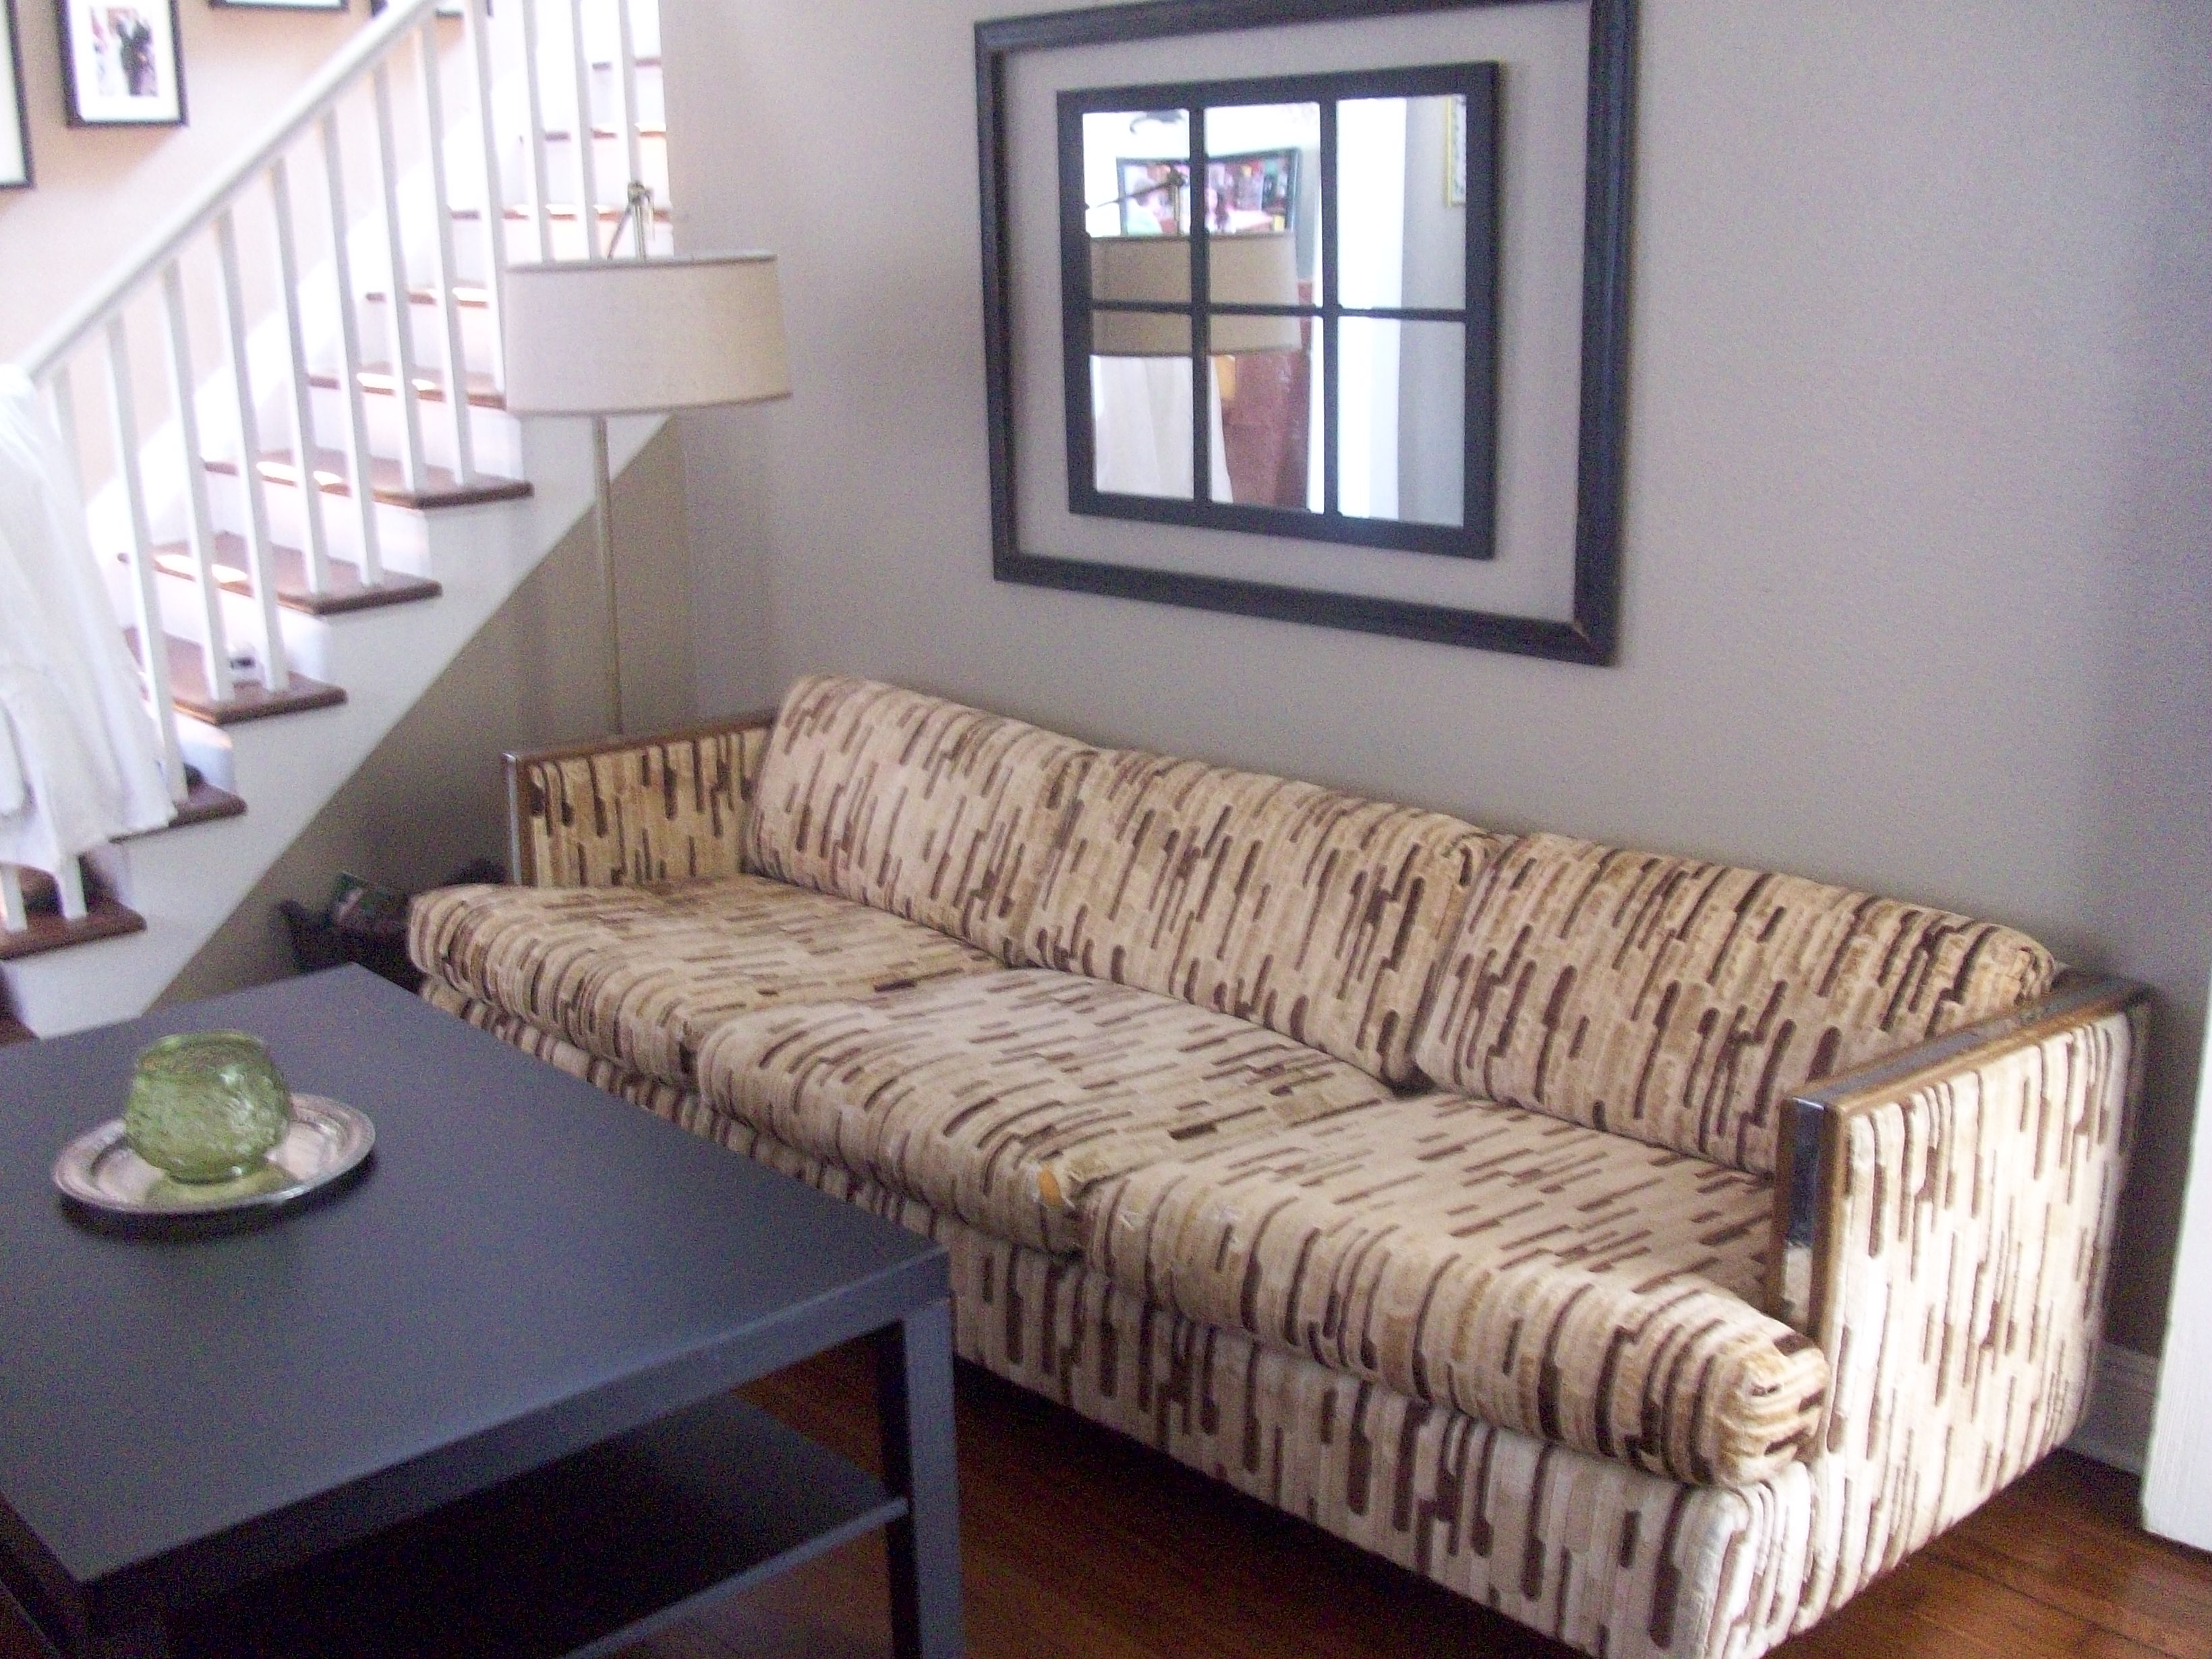 Transform An Ugly Sofa With A Dropcloth Slipcover Living Well On